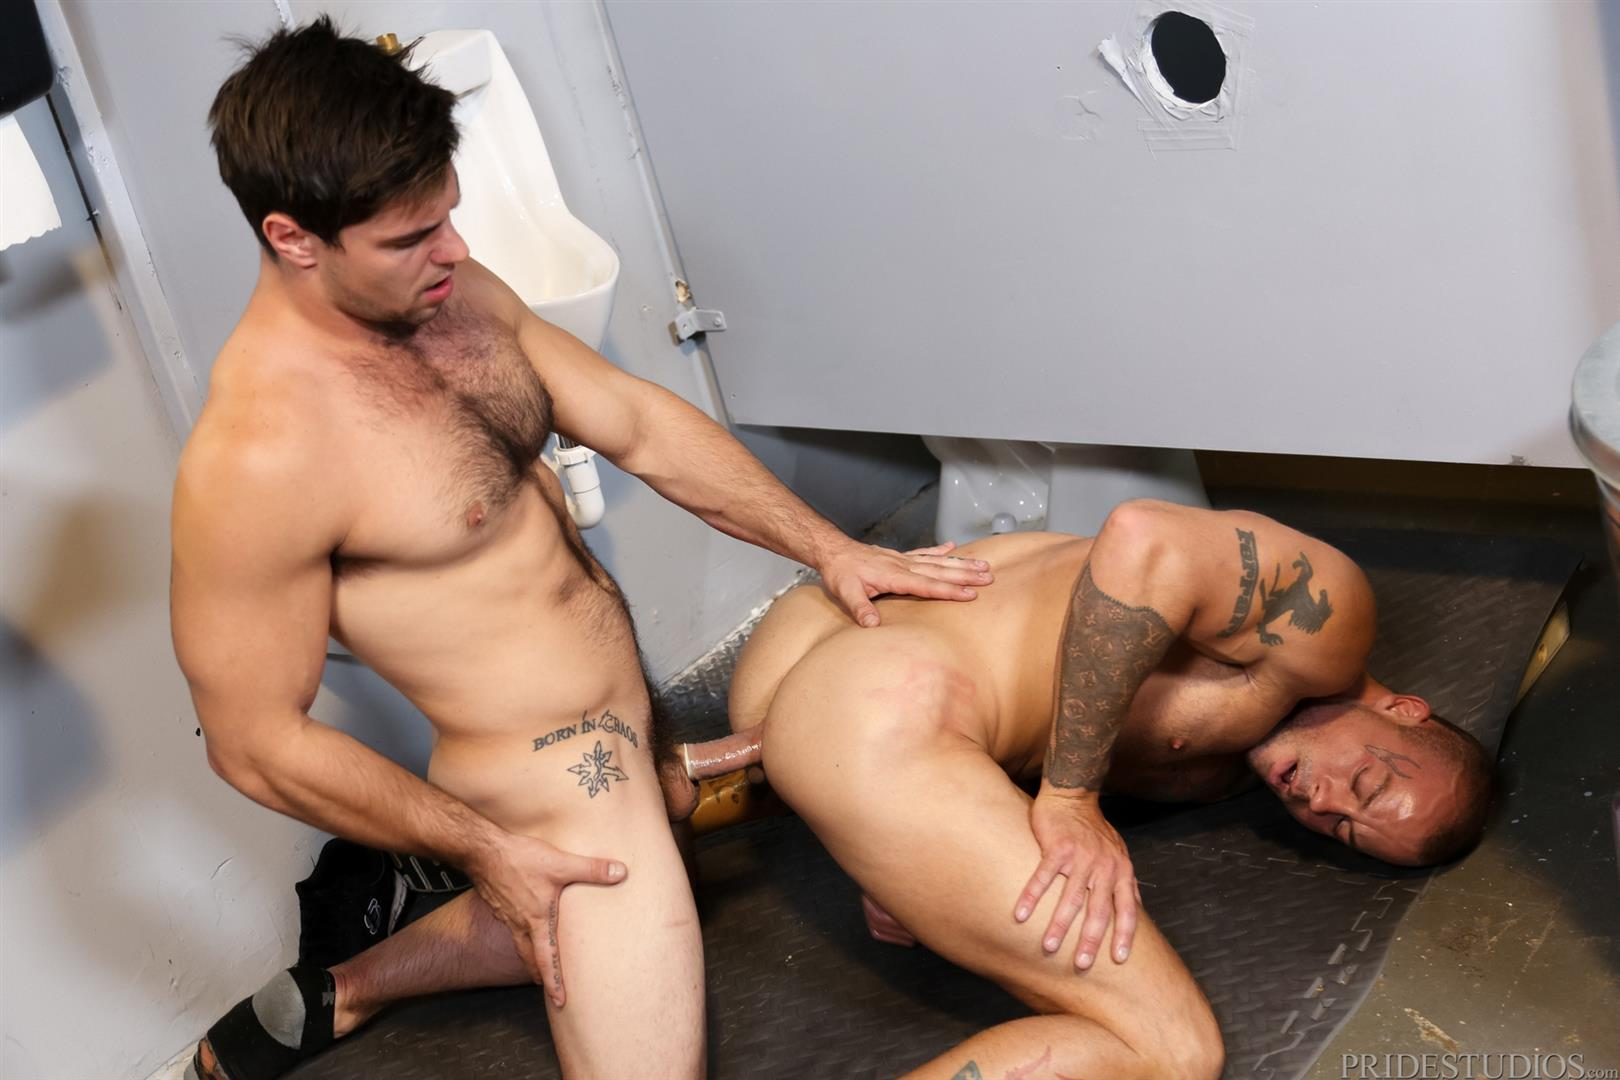 Extra-Big-Dicks-Sean-Duran-Fucking-Through-A-Glory-Hole-Amateur-Gay-Porn-13 Getting Fucked By A Big Fat Cock Through a Glory Hole